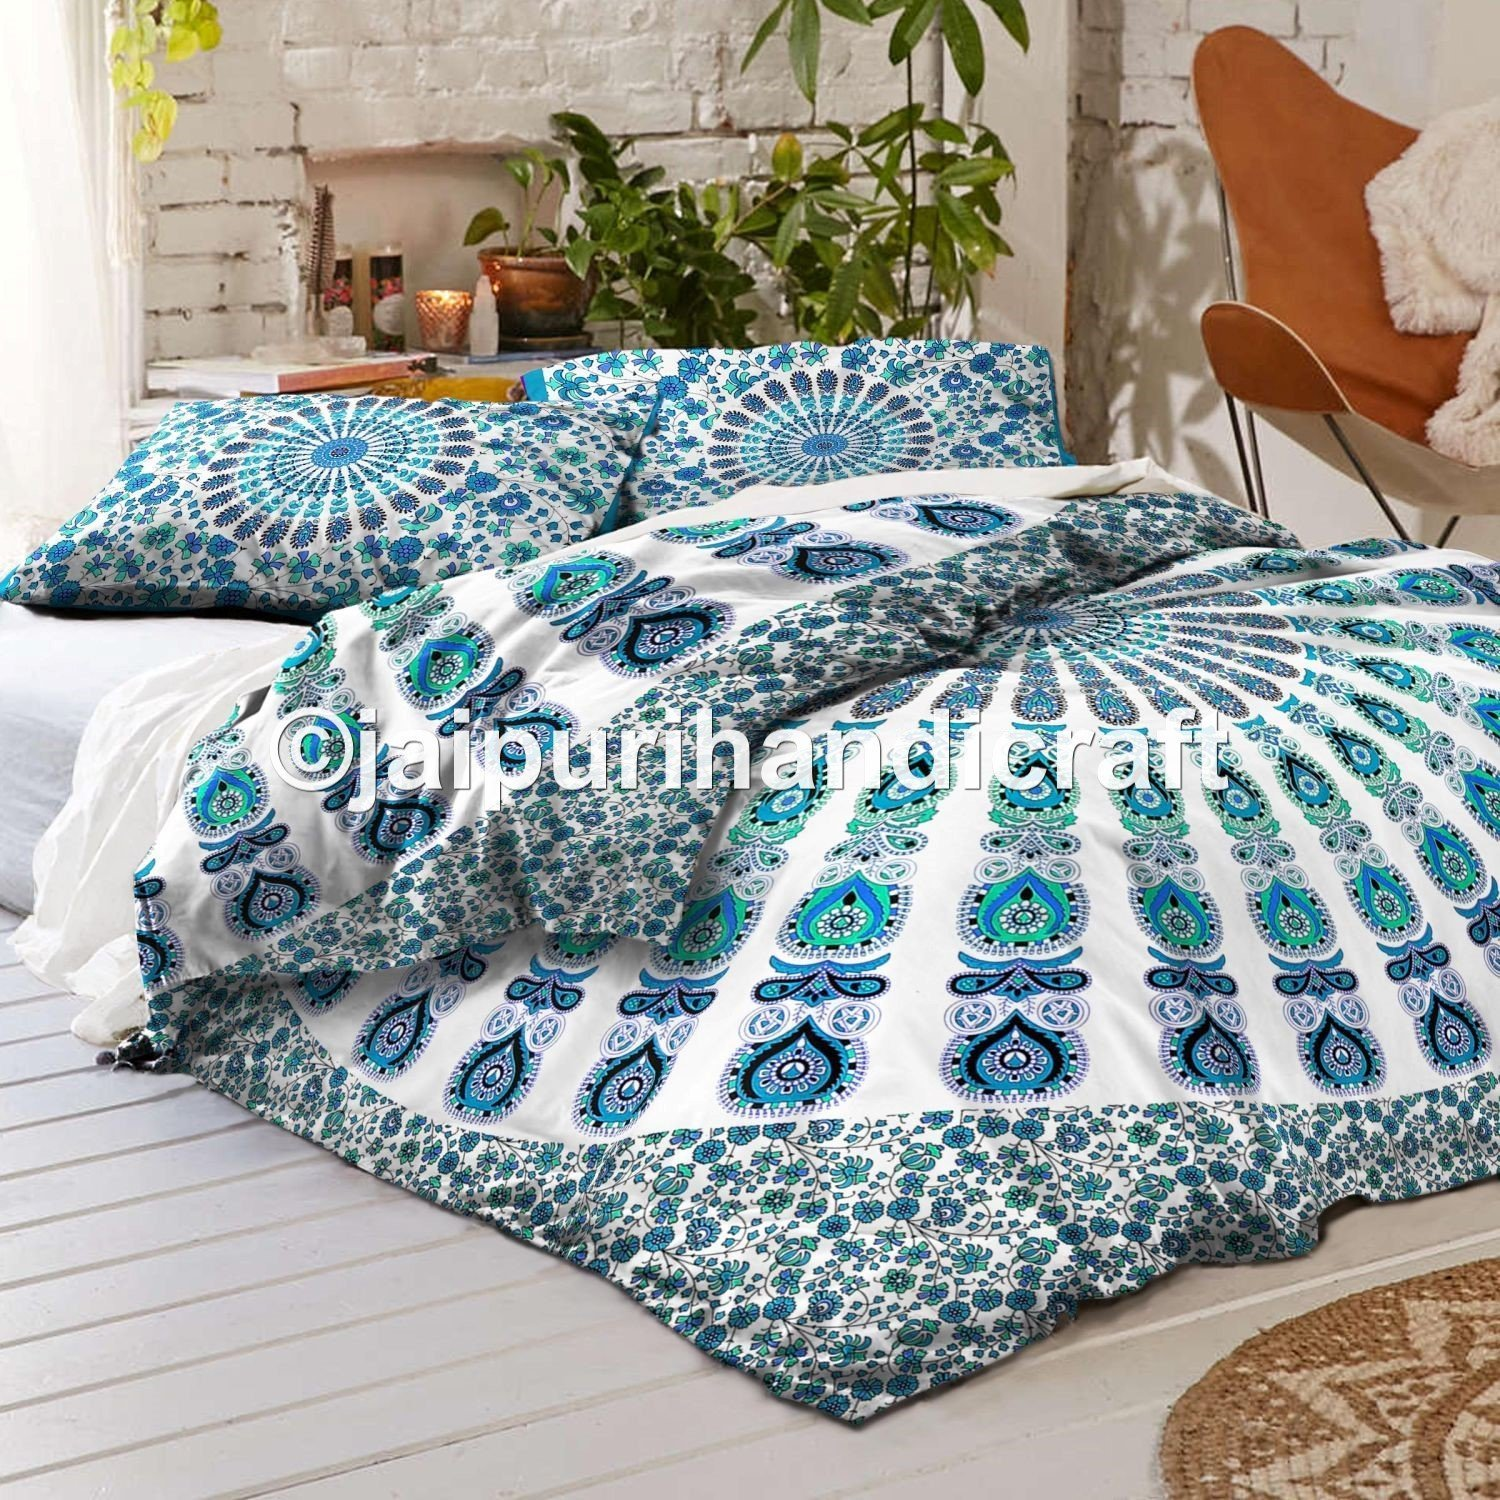 Black White and Turquoise Bedding Sets